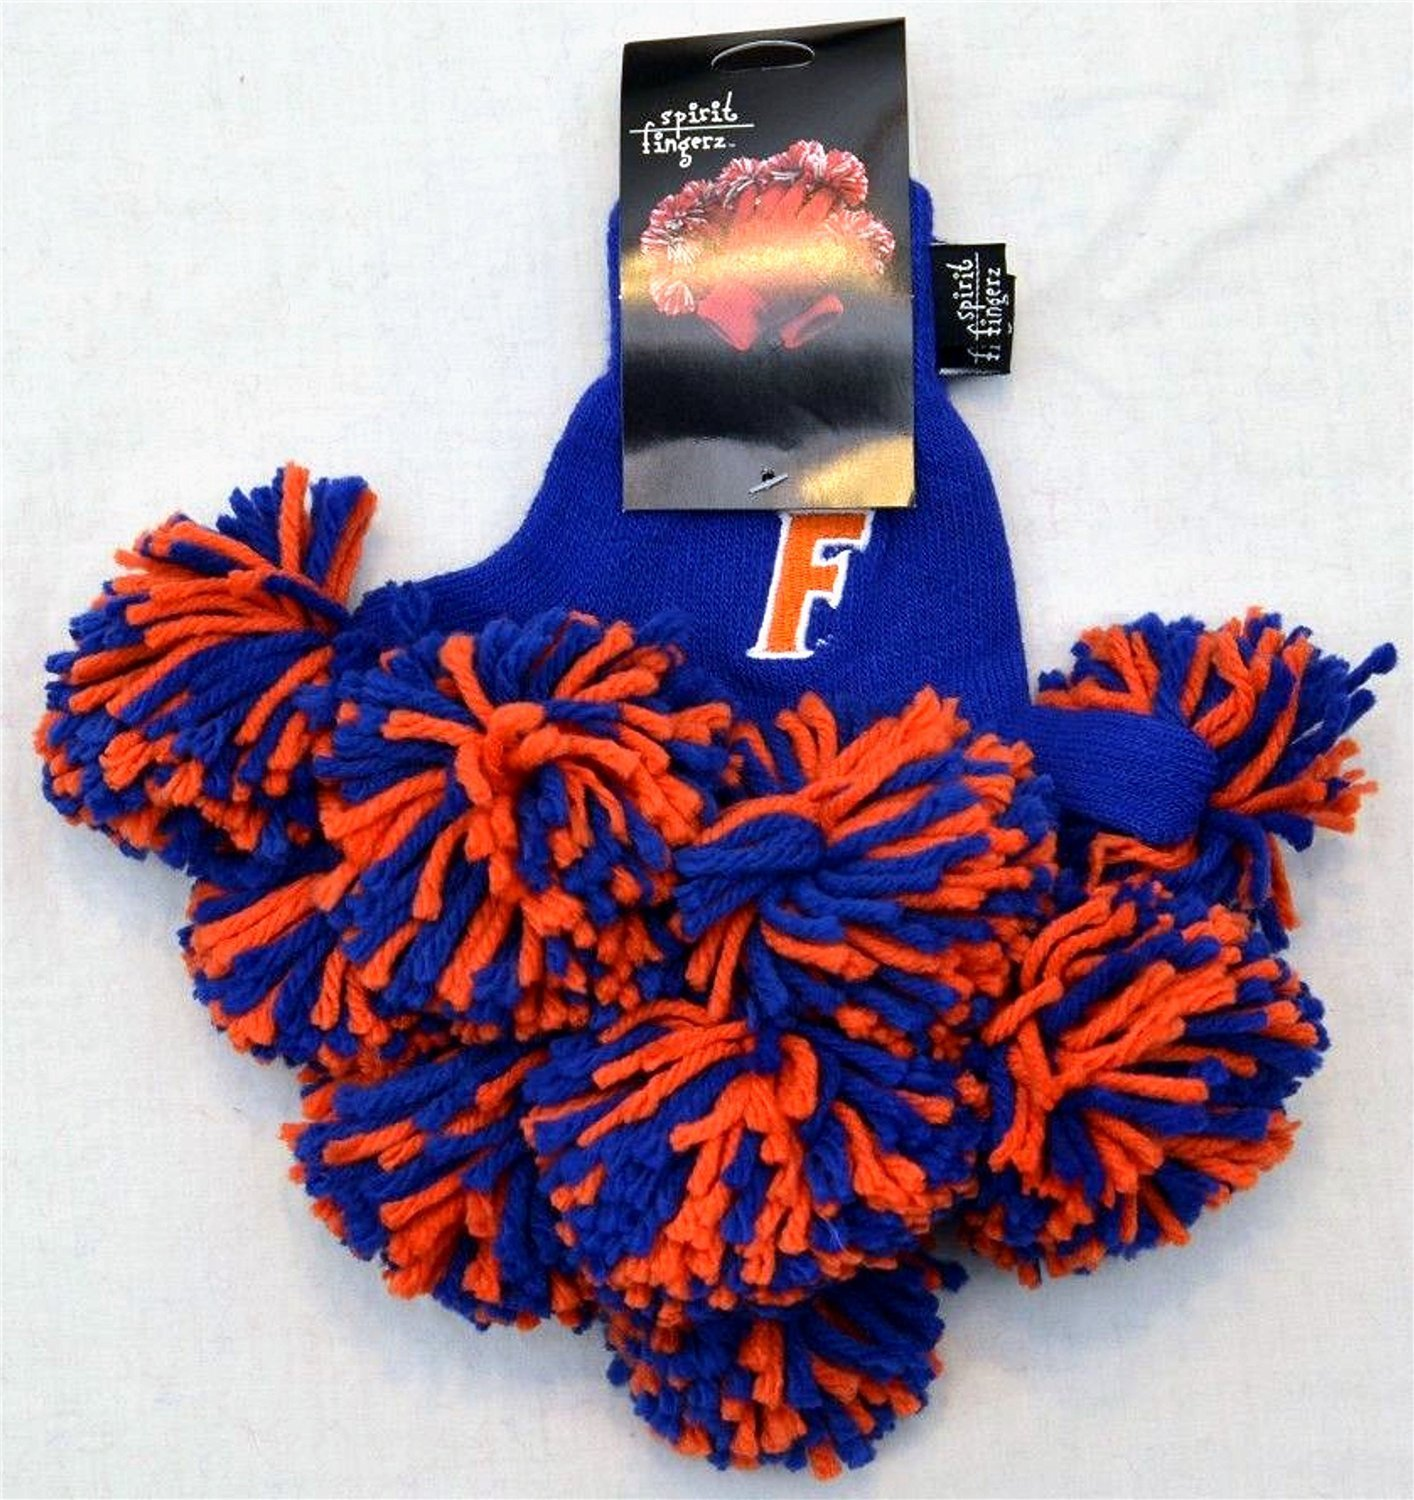 Amazon University Of Florida Gators Apparel Pom Gloves NCAA Spirit Fingerz Cheerleader Finger Poms Show College Pride Team And Are